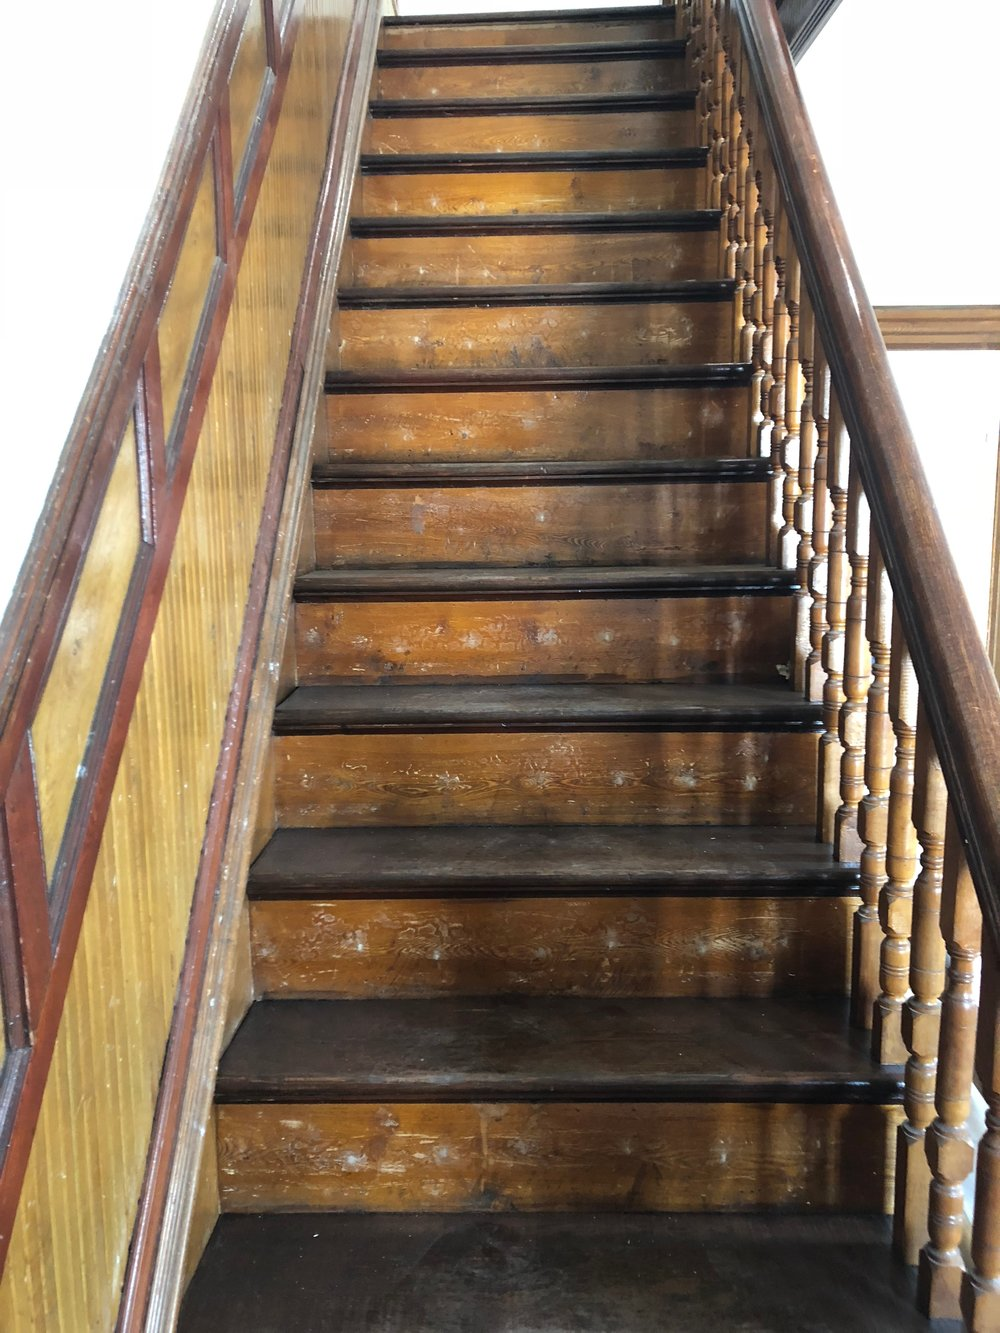 Stripped & stained stairs